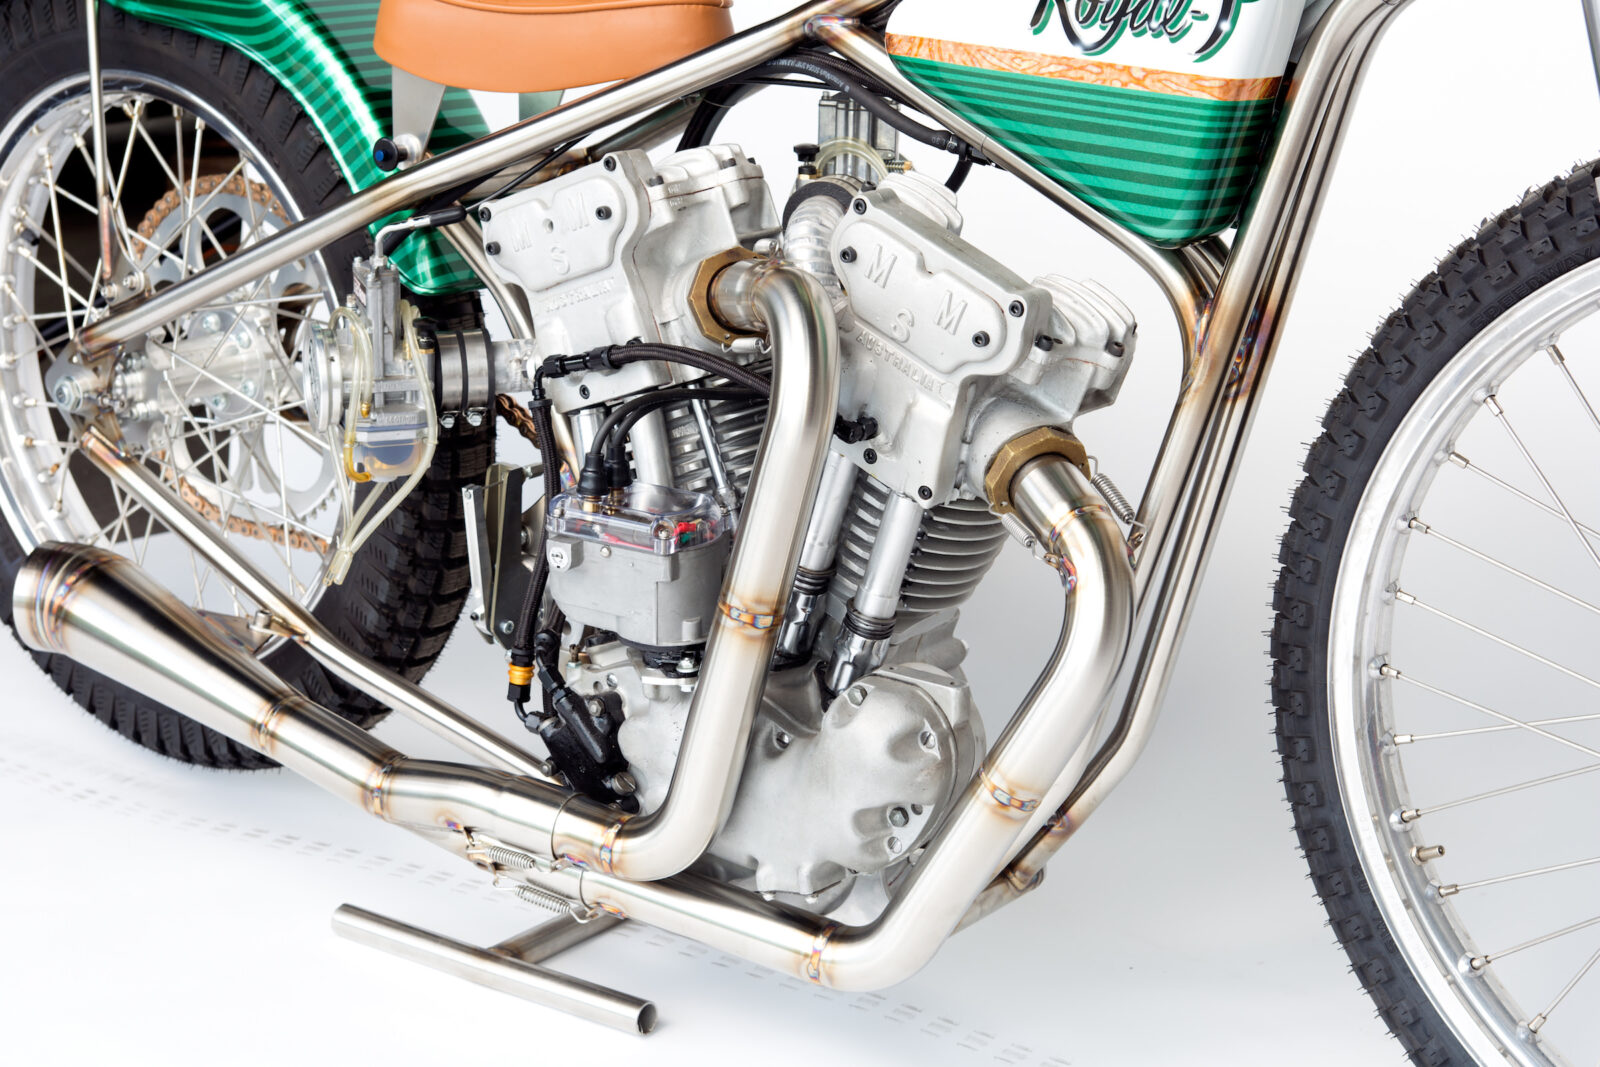 Meirson Sprint Motor MSM V Twin Prototype Speedway Bike Royal T Racing 6 1600x1067 - The Only One In The World: 1967 Meirson Sprint Motor (MSM) V-Twin Speedway Bike